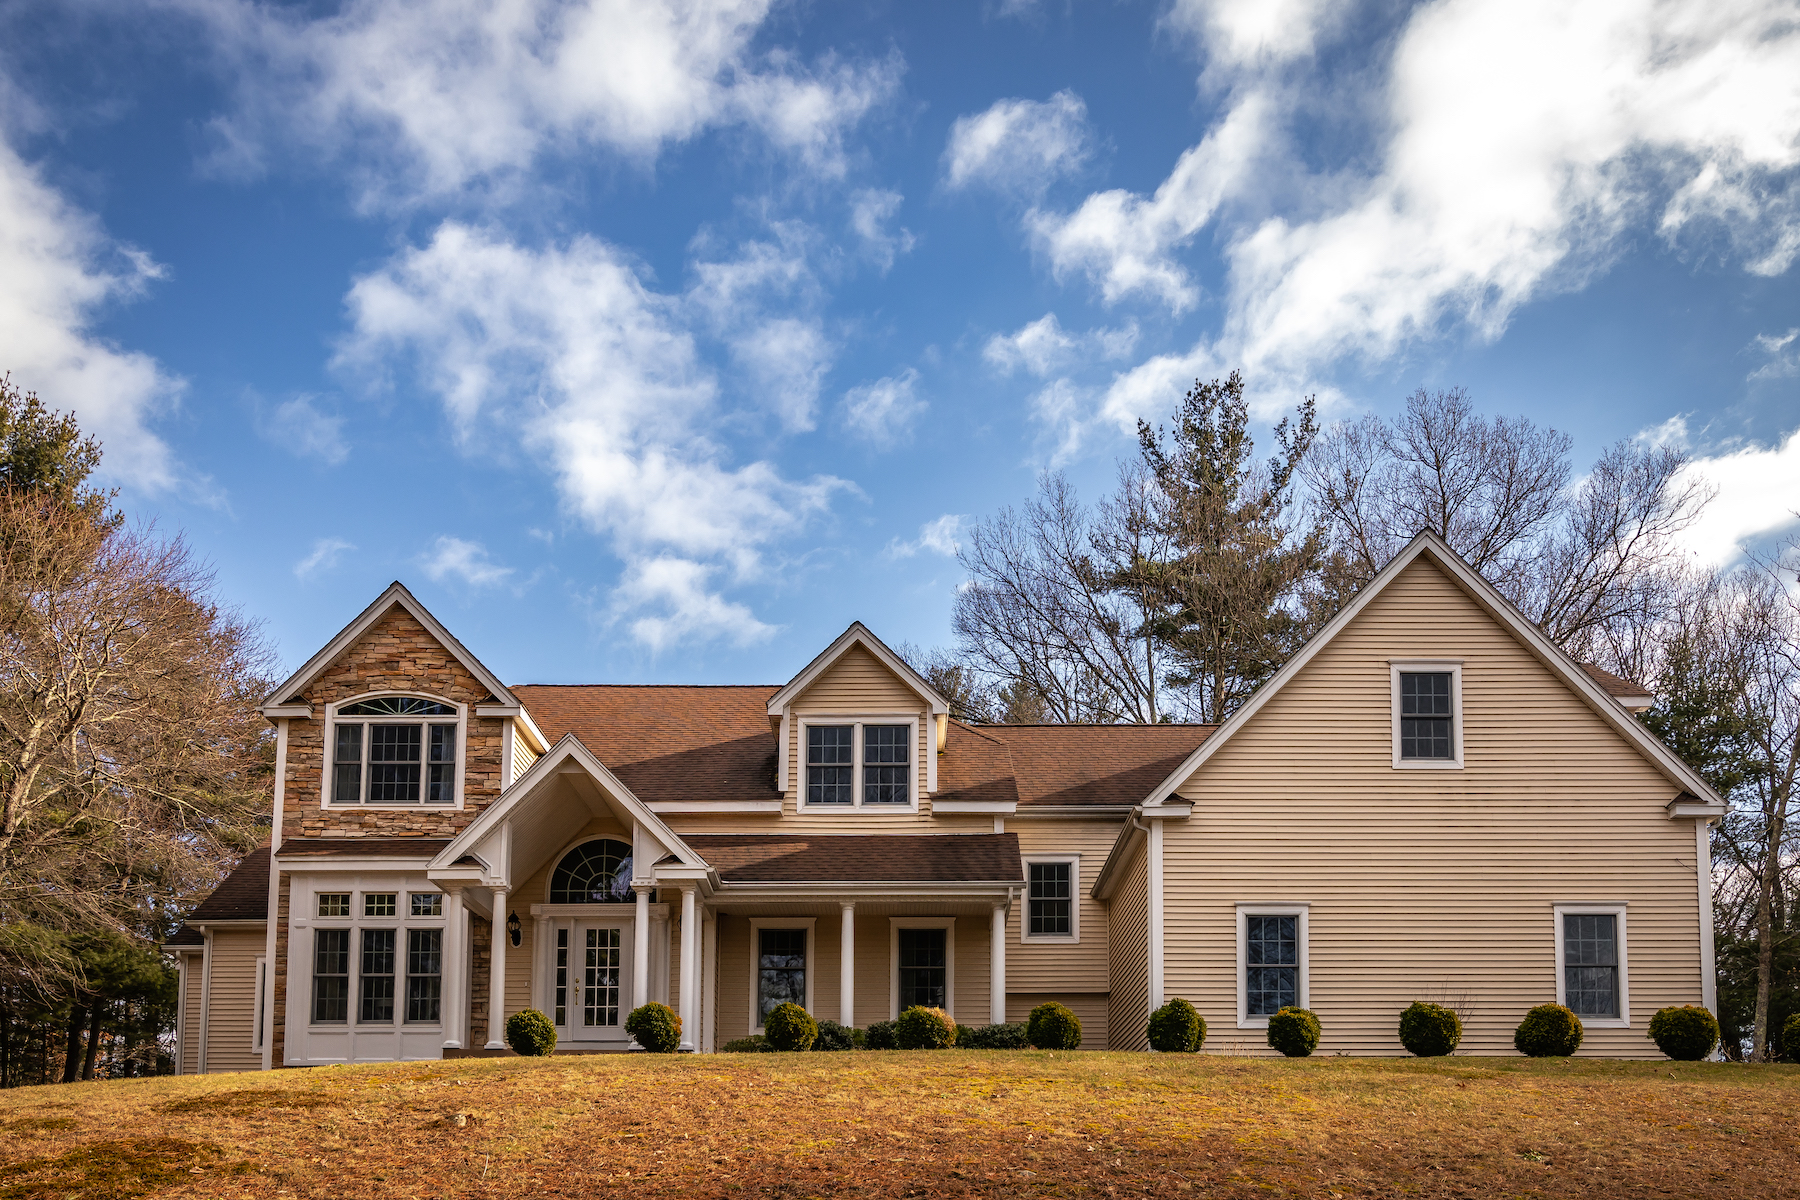 Single Family Homes for Sale at Custom Built Colonial - A Unique And Hidden Retreat 10 Fay Mountain Road Grafton, Massachusetts 01519 United States